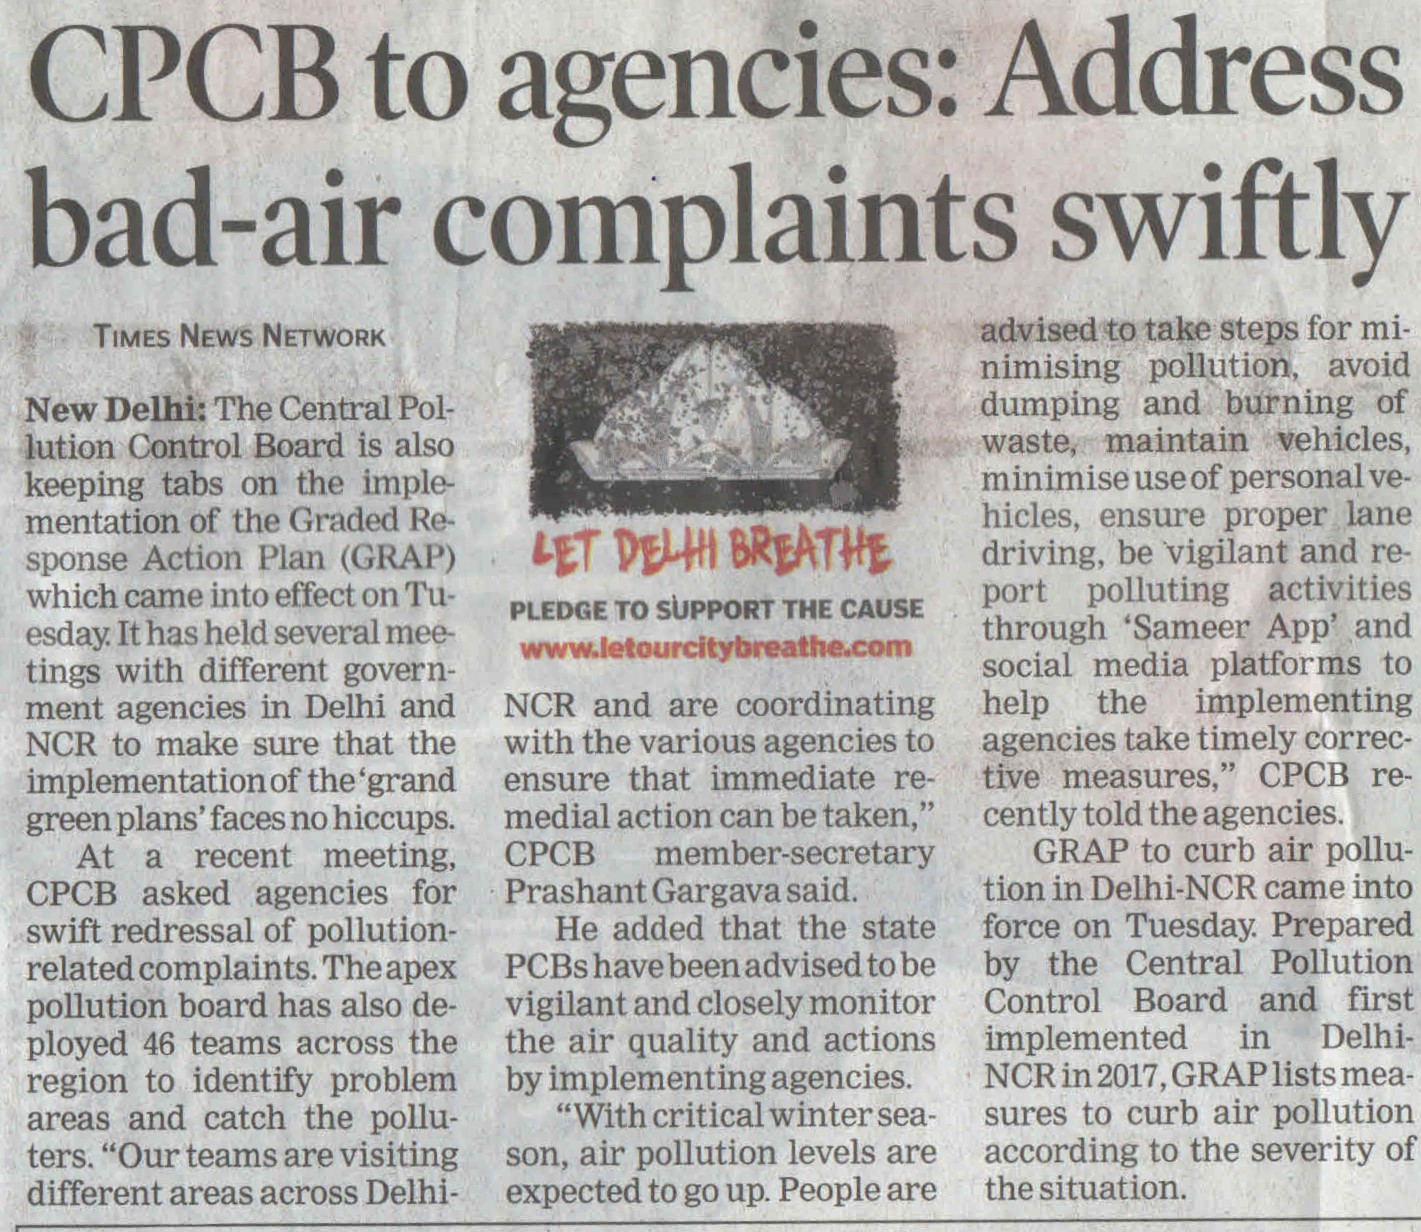 CPCB to agencies: address bad-air complaints swiftly